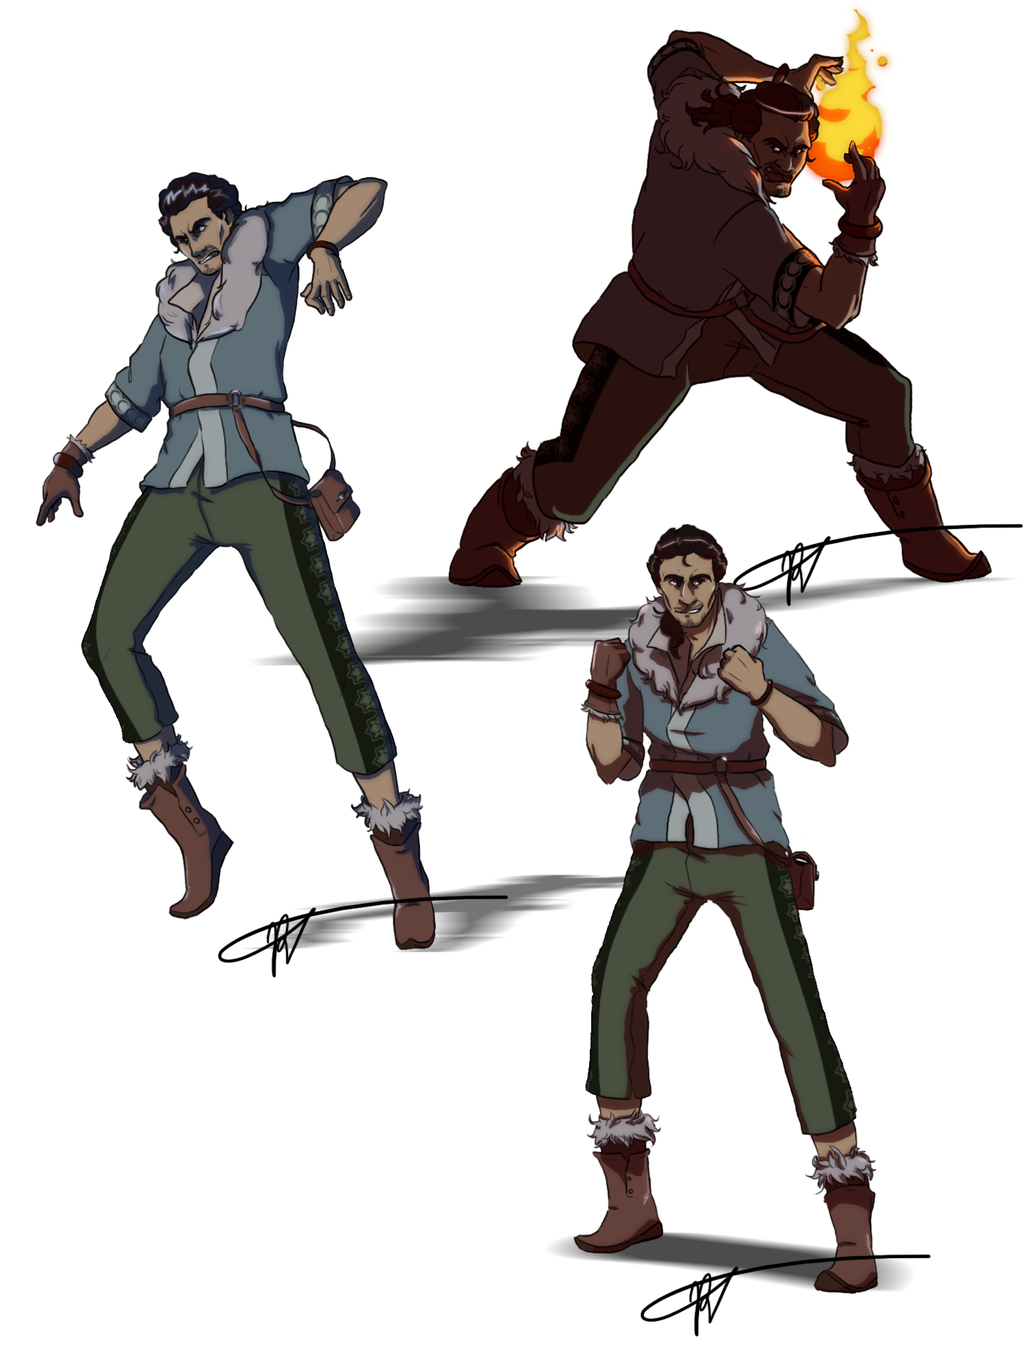 Dynamic Character Design Definition : Portfolio original character design dynamic poses by